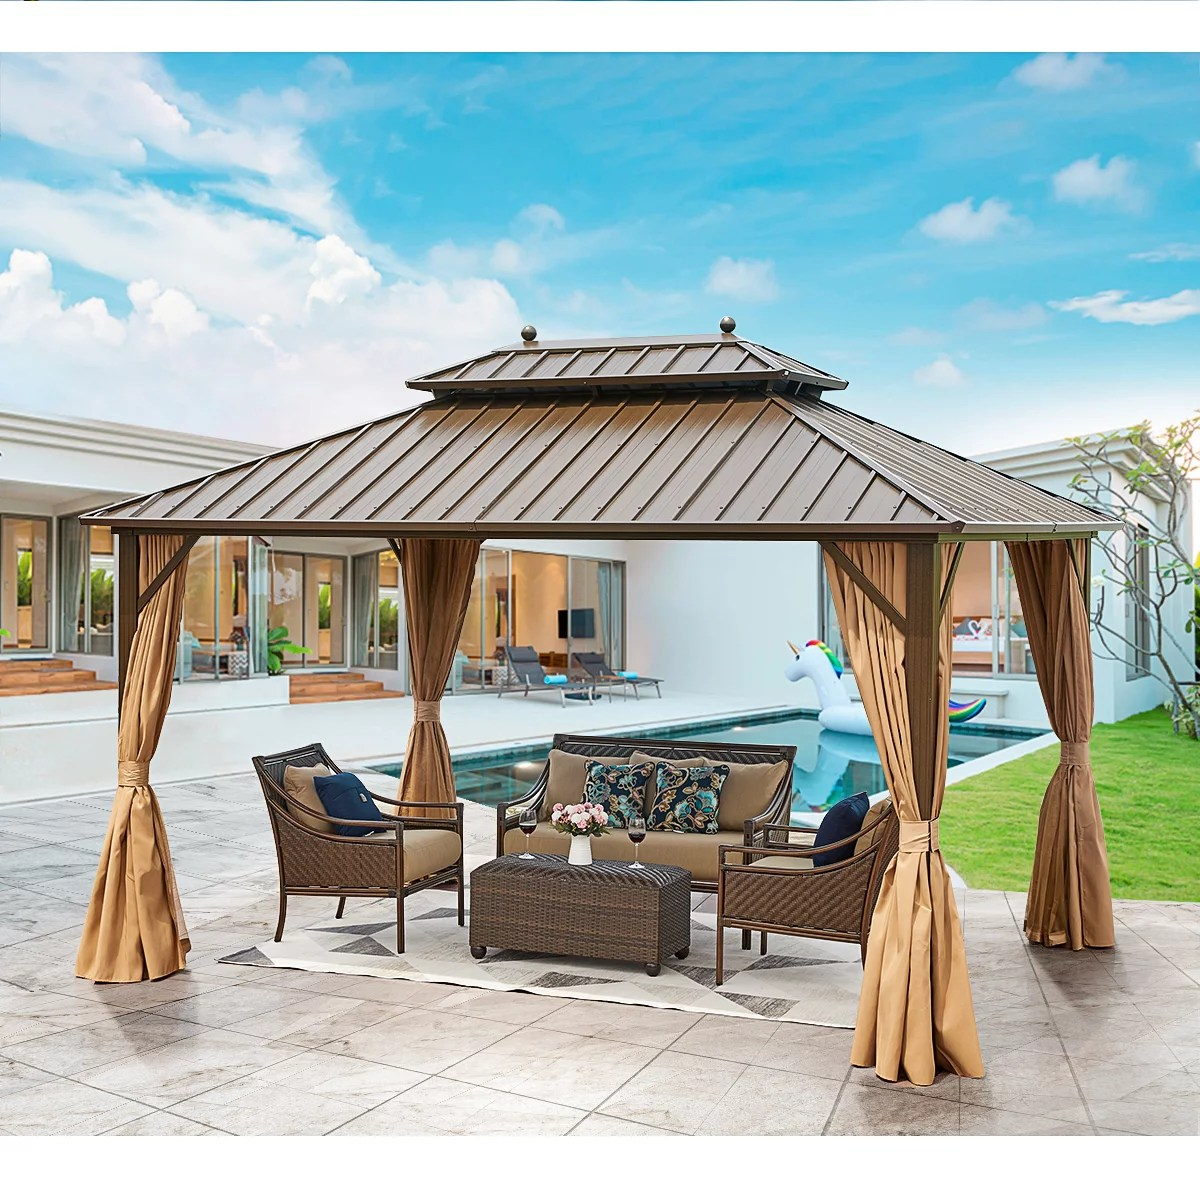 erommy 10 x 13 hardtop gazebo galvanized steel outdoor gazebo canopy double vented roof pergolas aluminum frame with netting and curtains for